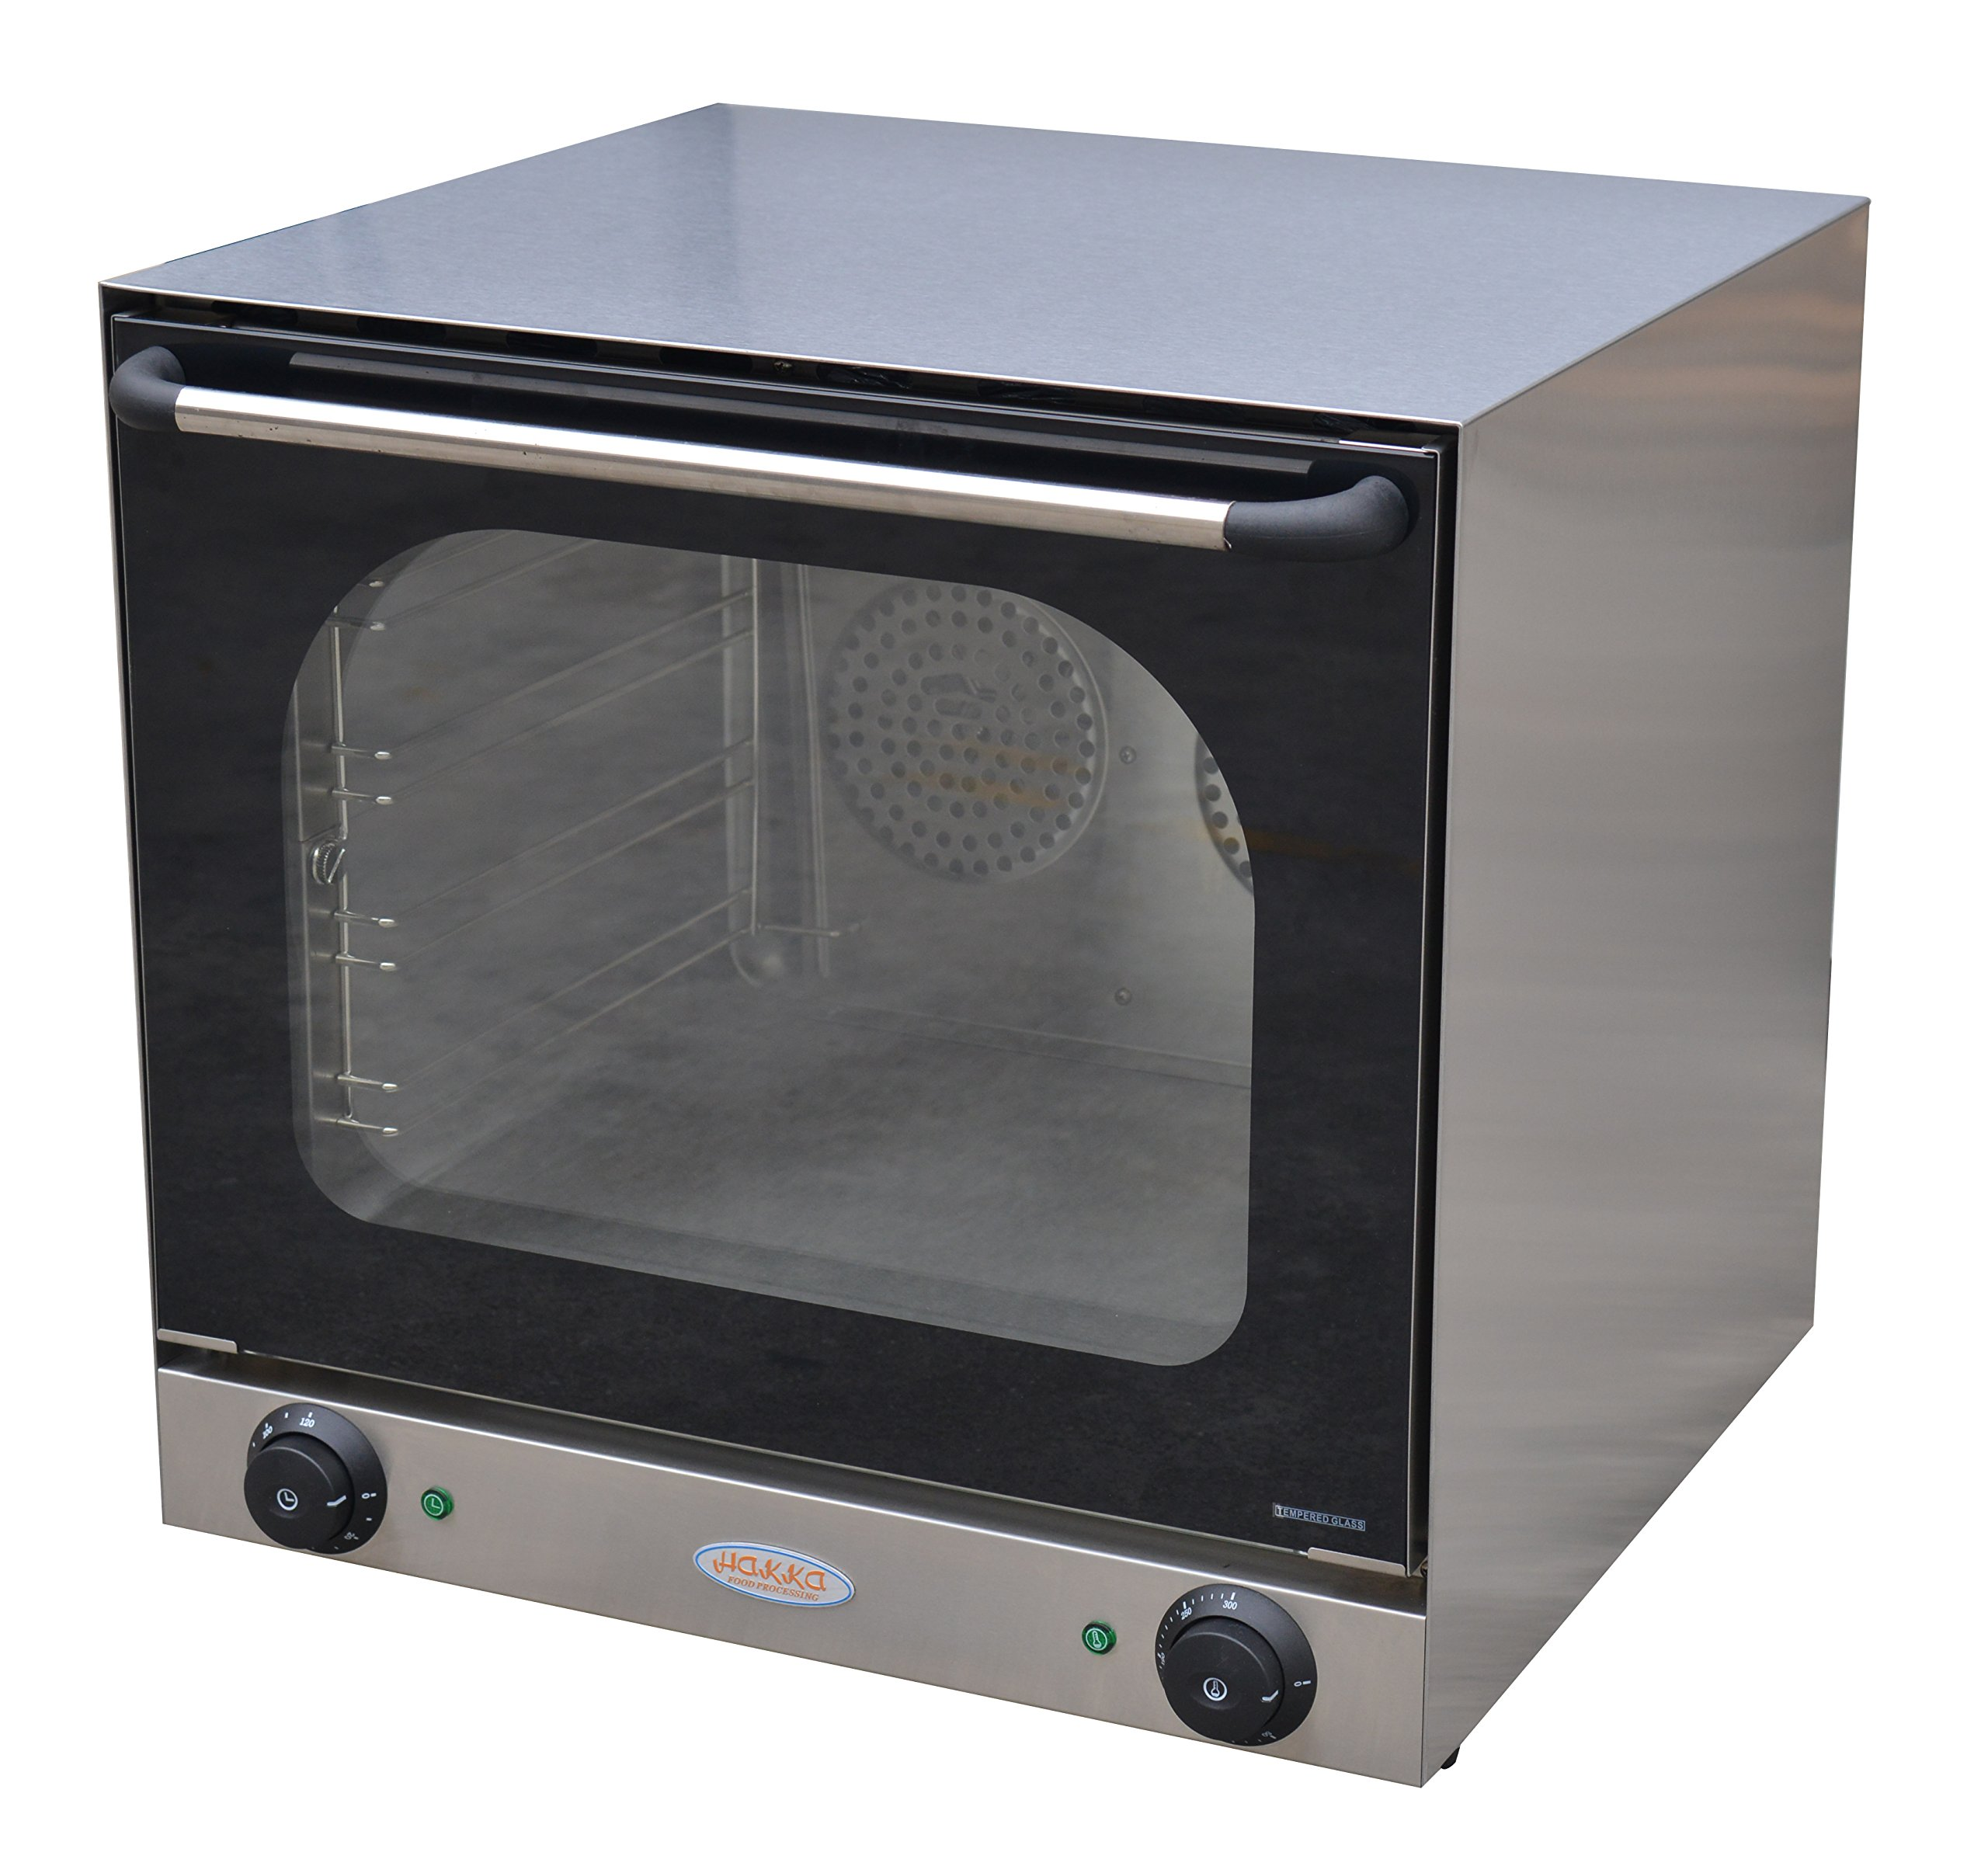 Hakka Commercial Convection Counter Top Oven with Steaming Function (220V/60Hz) by HAKKA (Image #1)